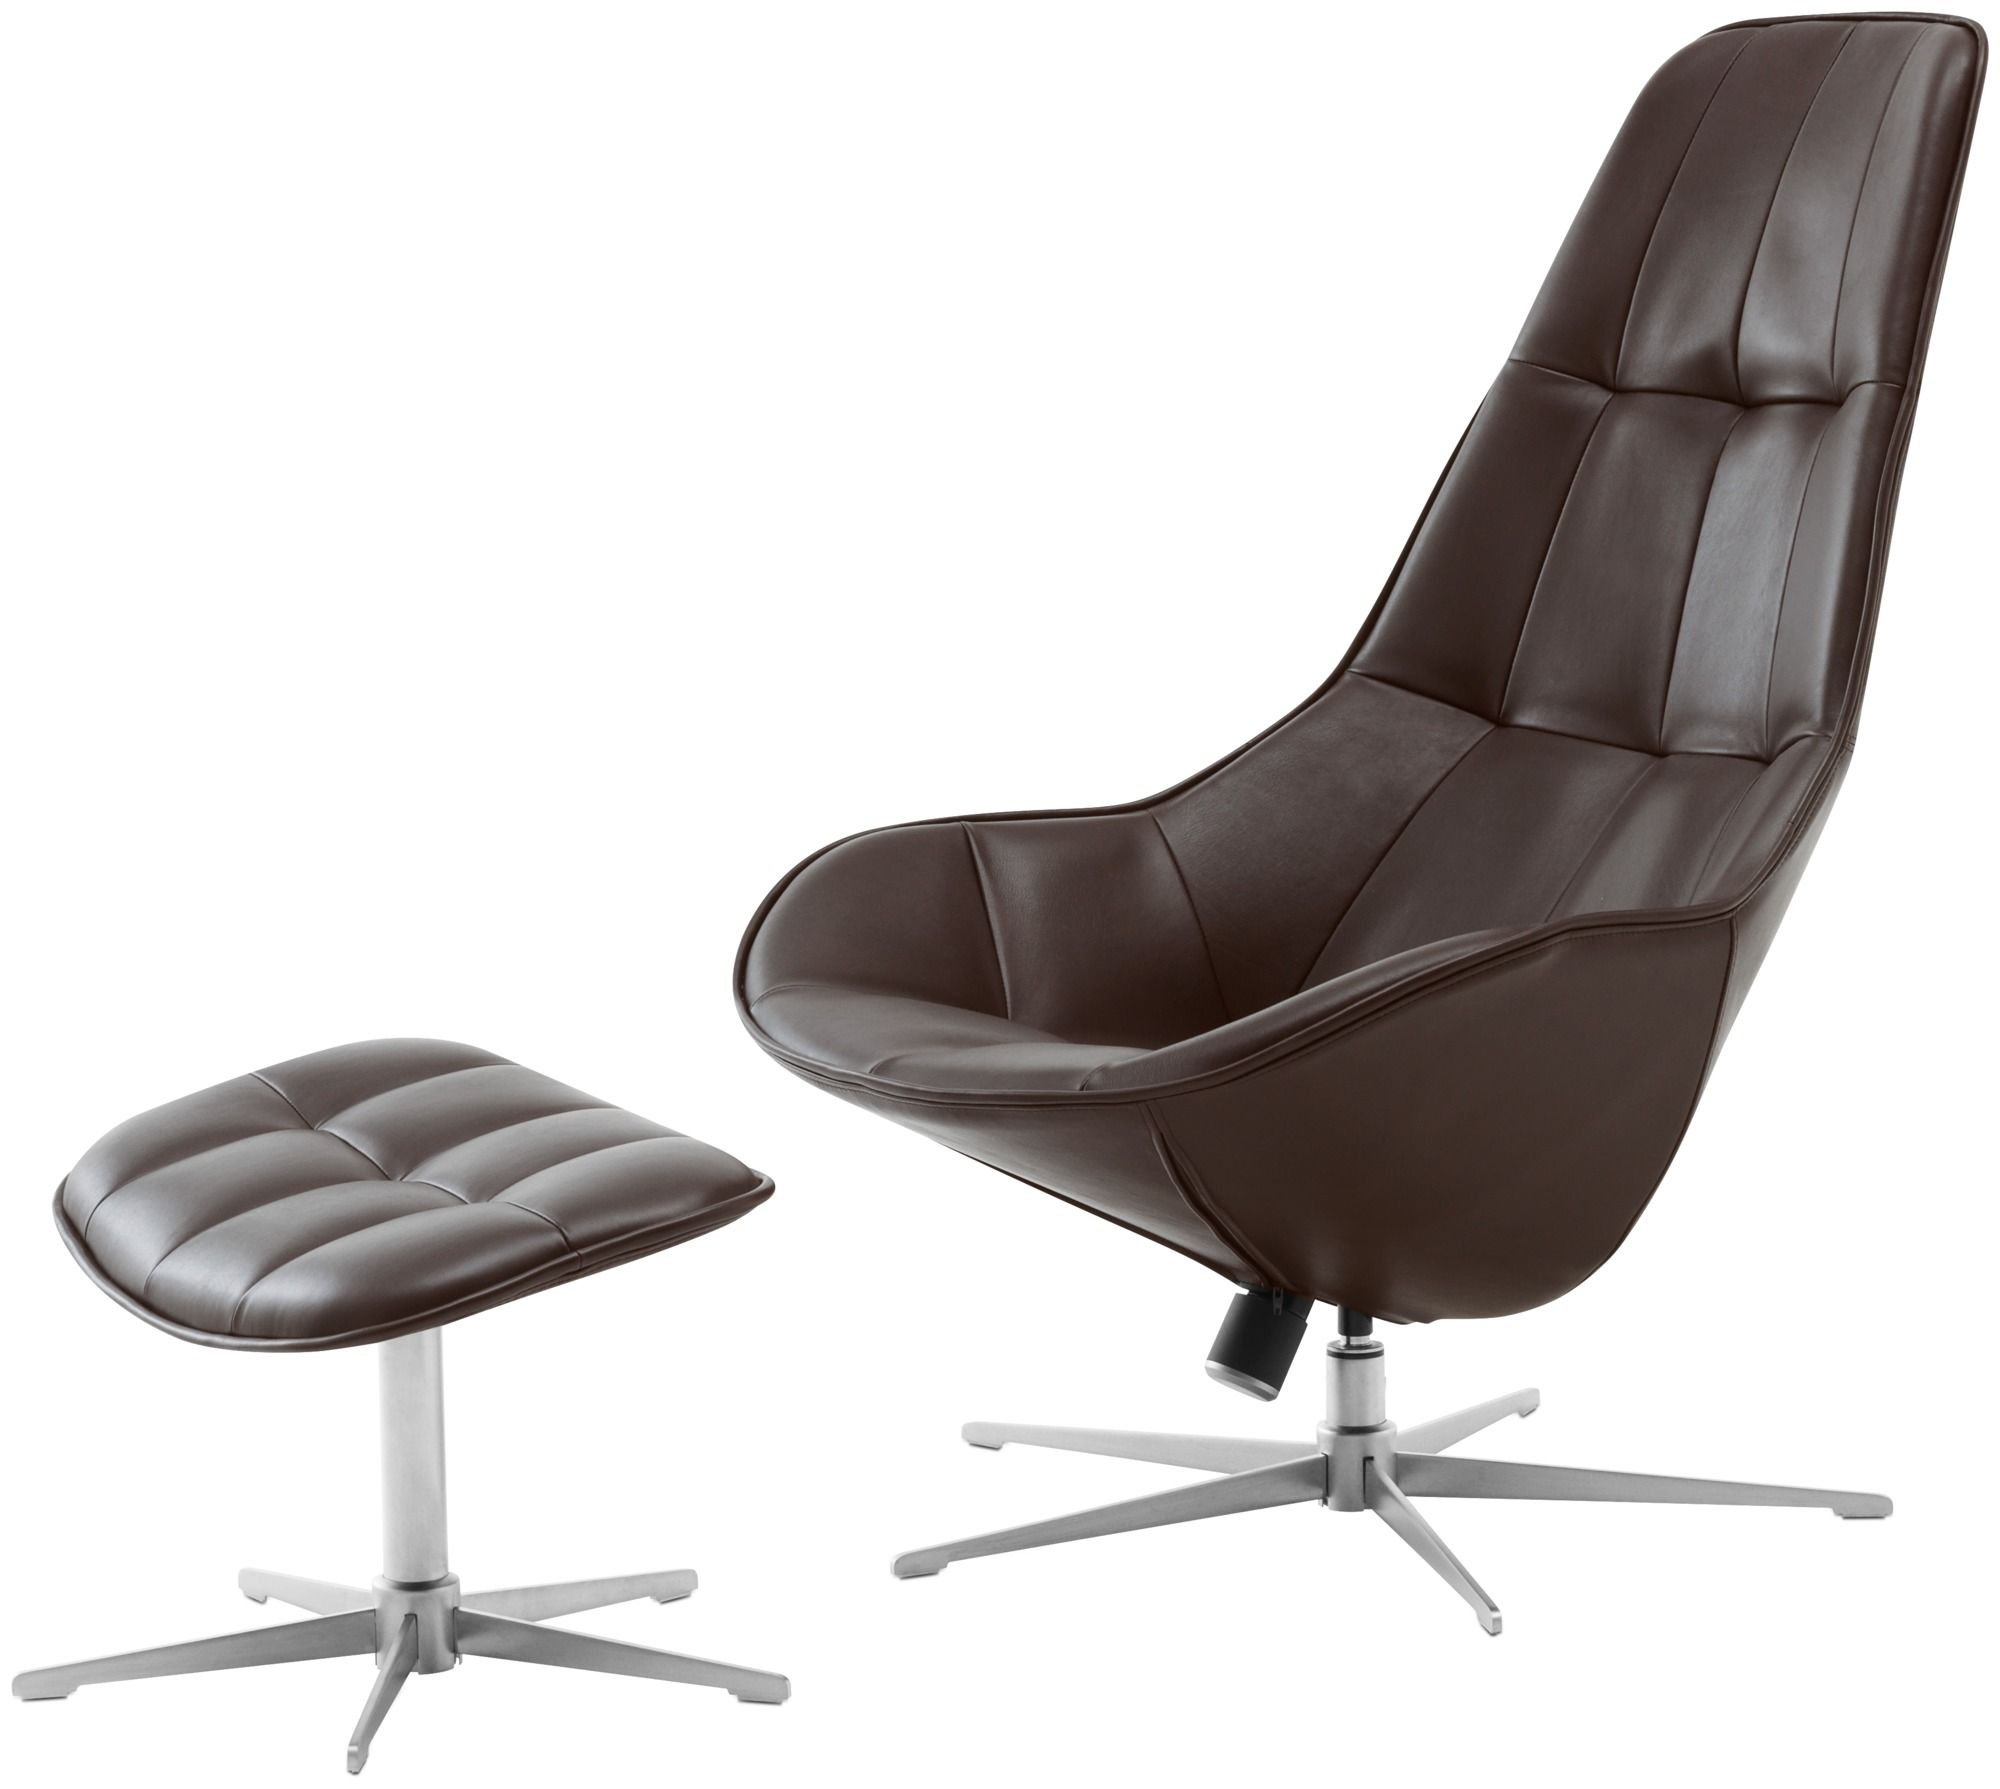 modern armchairs  contemporary armchairs  boconcept  chairs  - modern armchairs  contemporary armchairs  boconcept